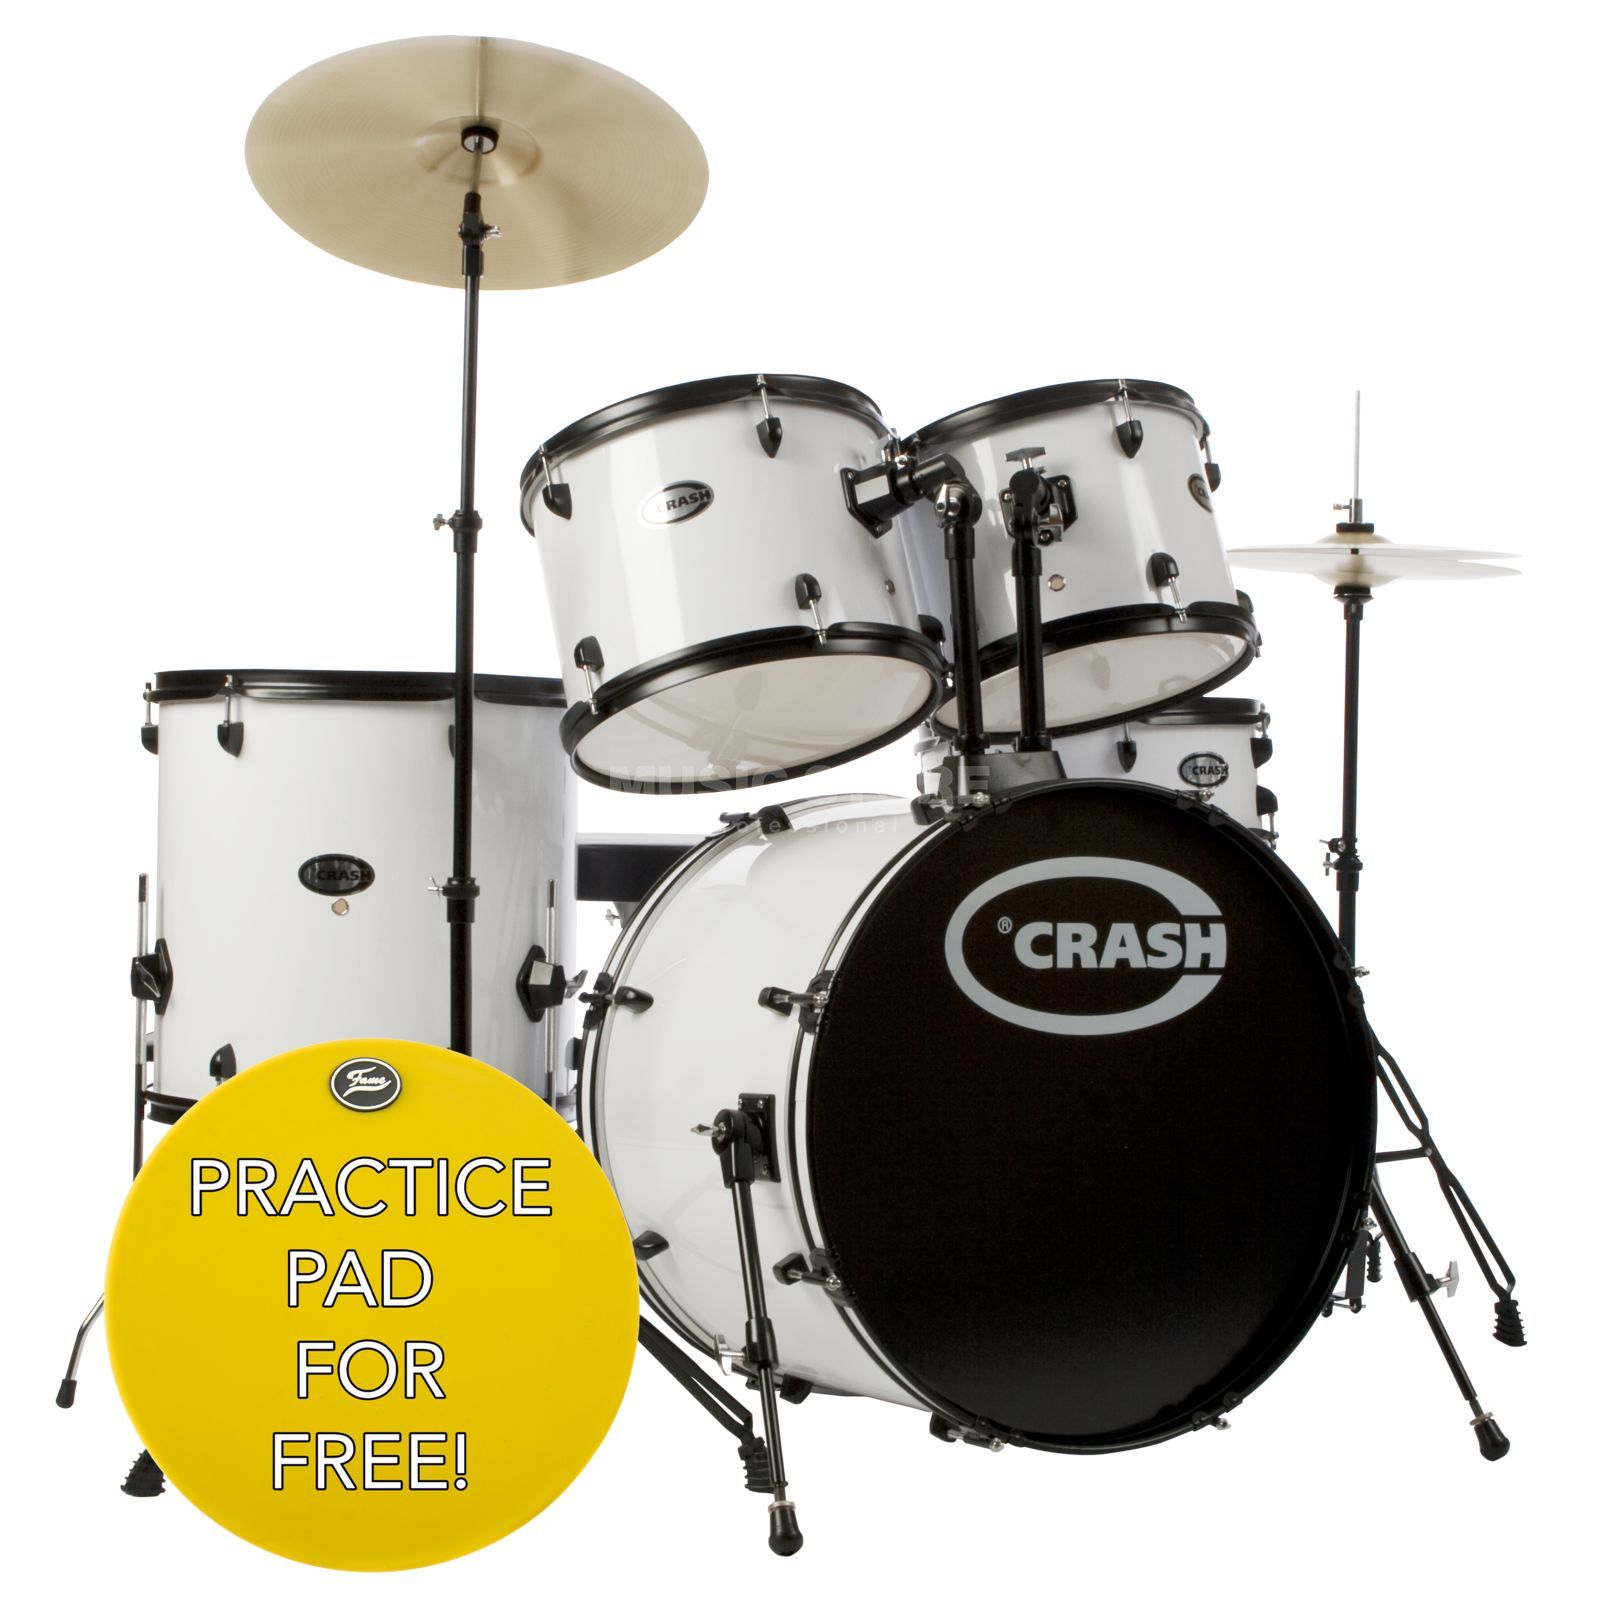 Crash Force Five DrumSet, White, Black HW Produktbillede